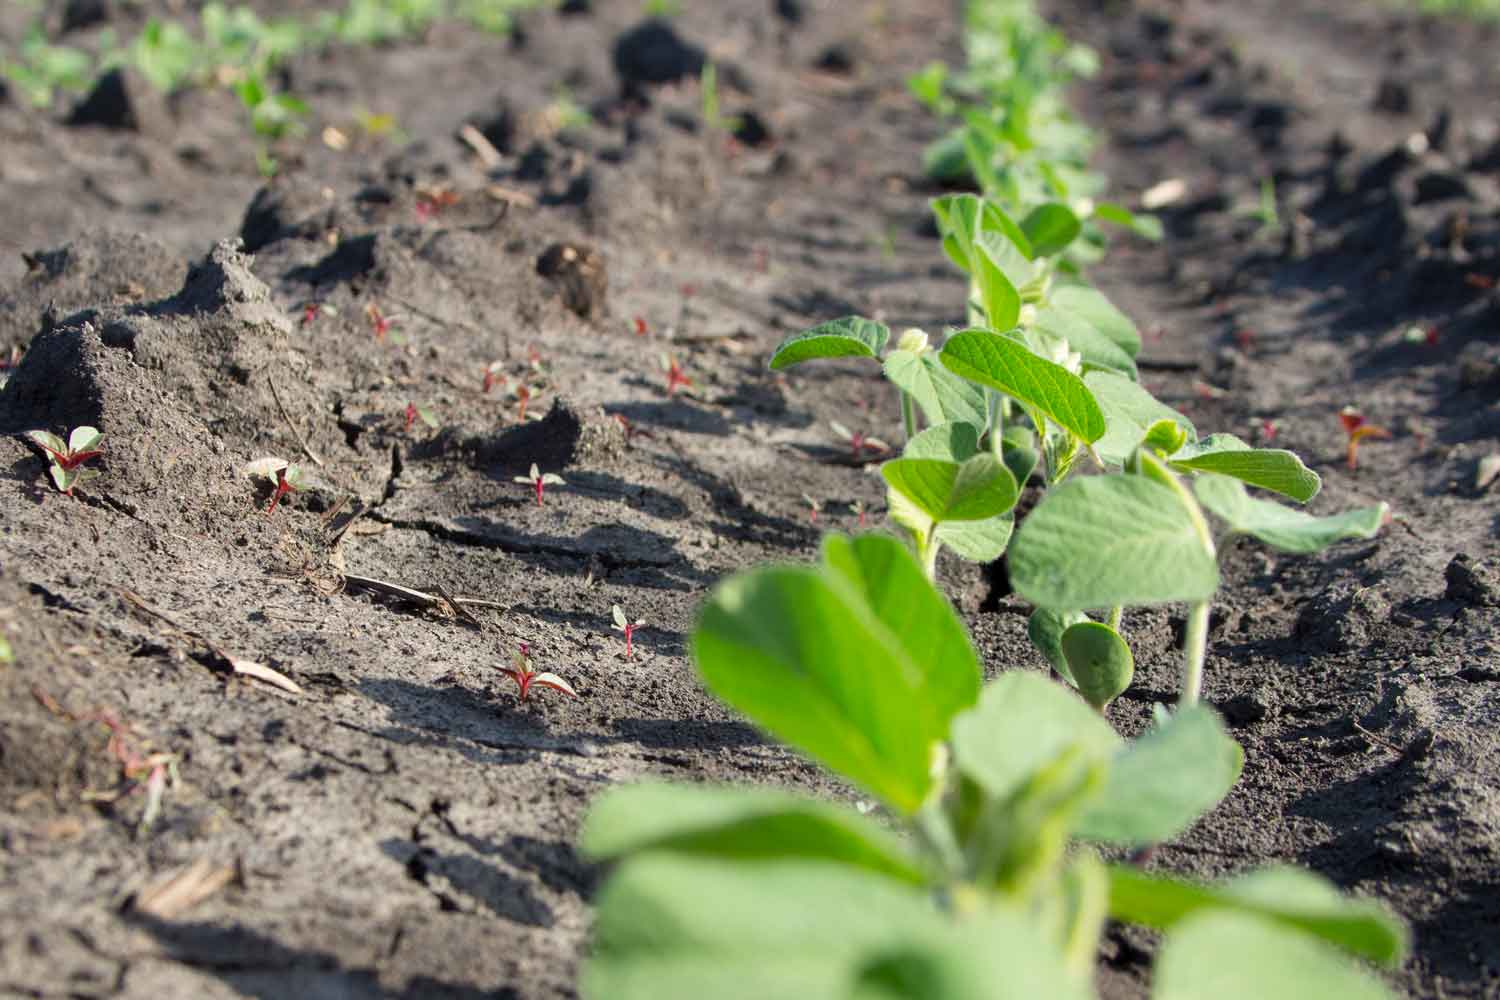 soybean field with young weeds emerging